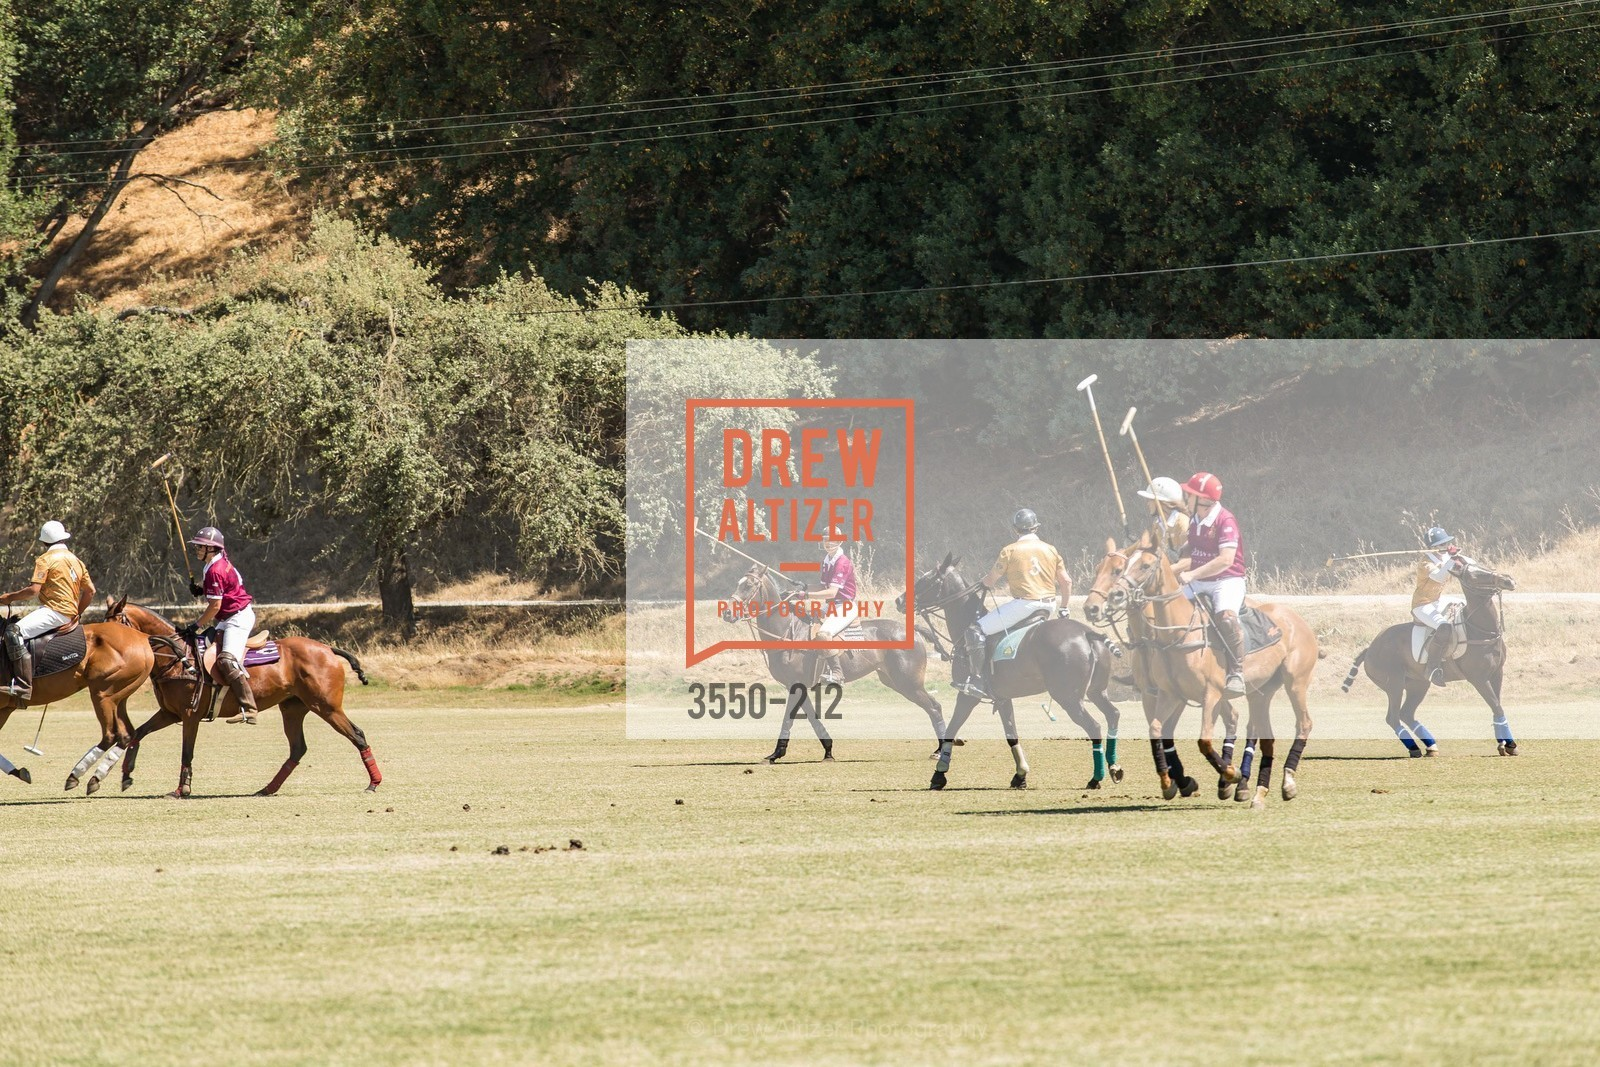 Polo Match, Photo #3550-212